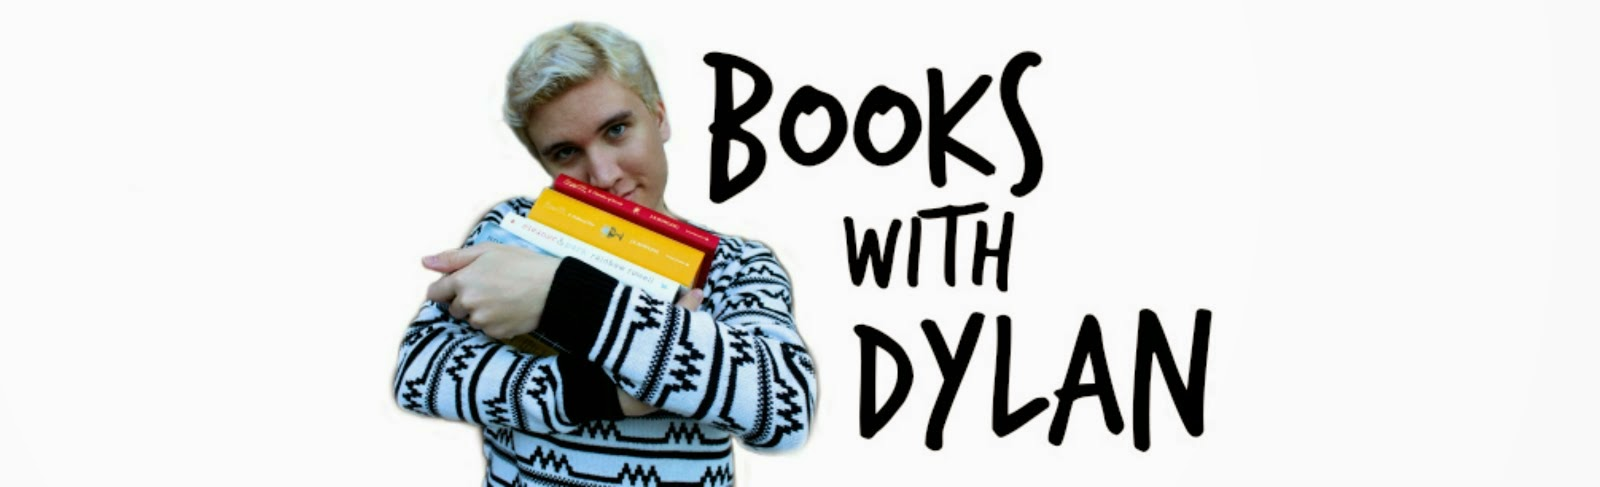 books with dylan